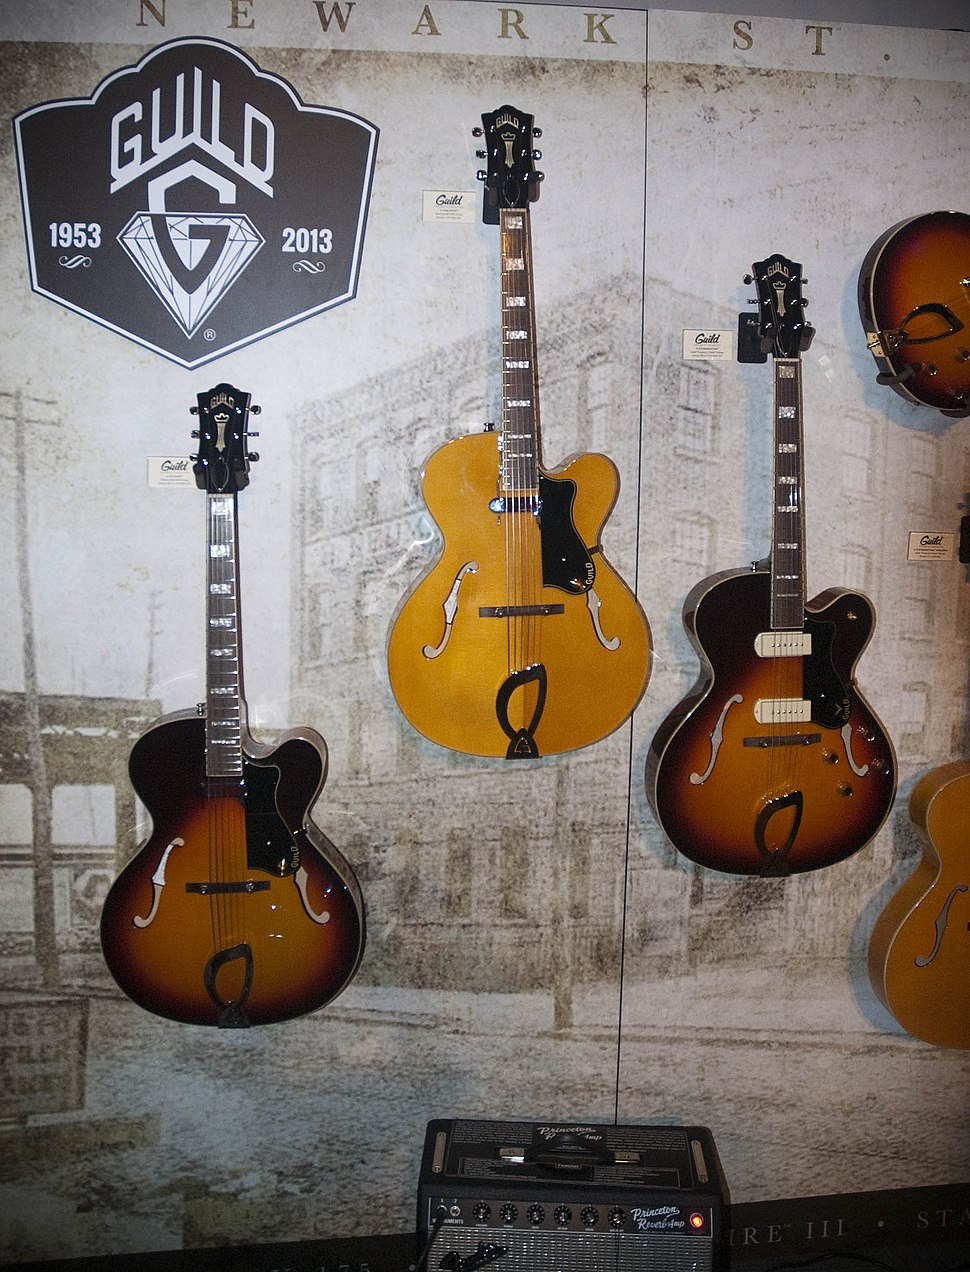 Guild Newark St. Collection 1 - A-150 Savoy (Antique Burst), A-150 Savoy (Blonde), X-175 Manhattan (Antique Burst) - NAMM 2013